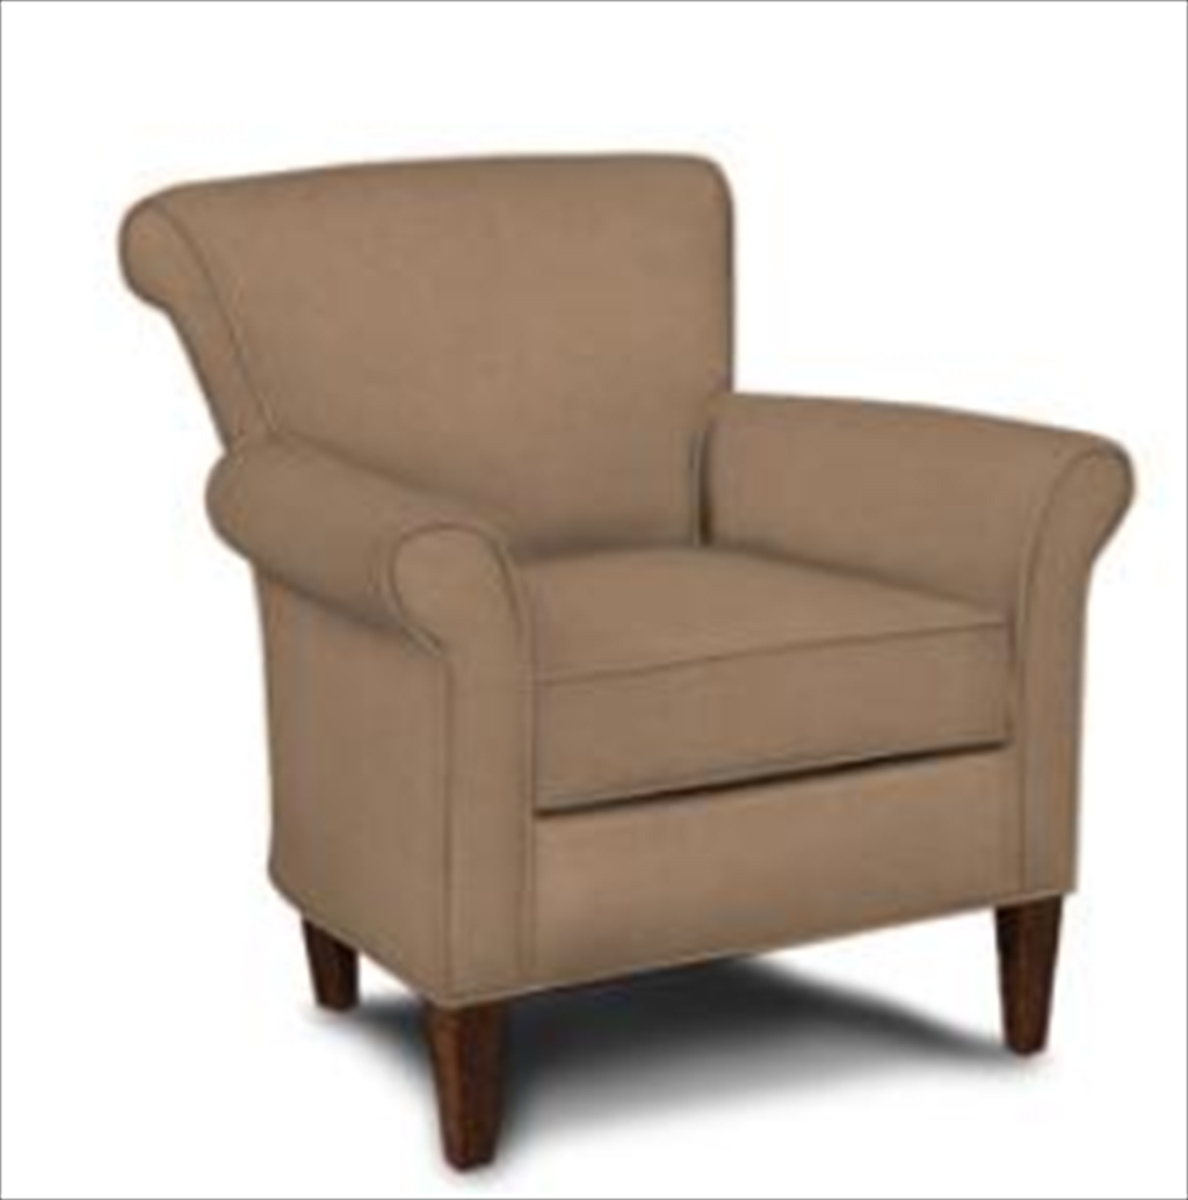 Klaussner Louise Chair - Willow Bronze